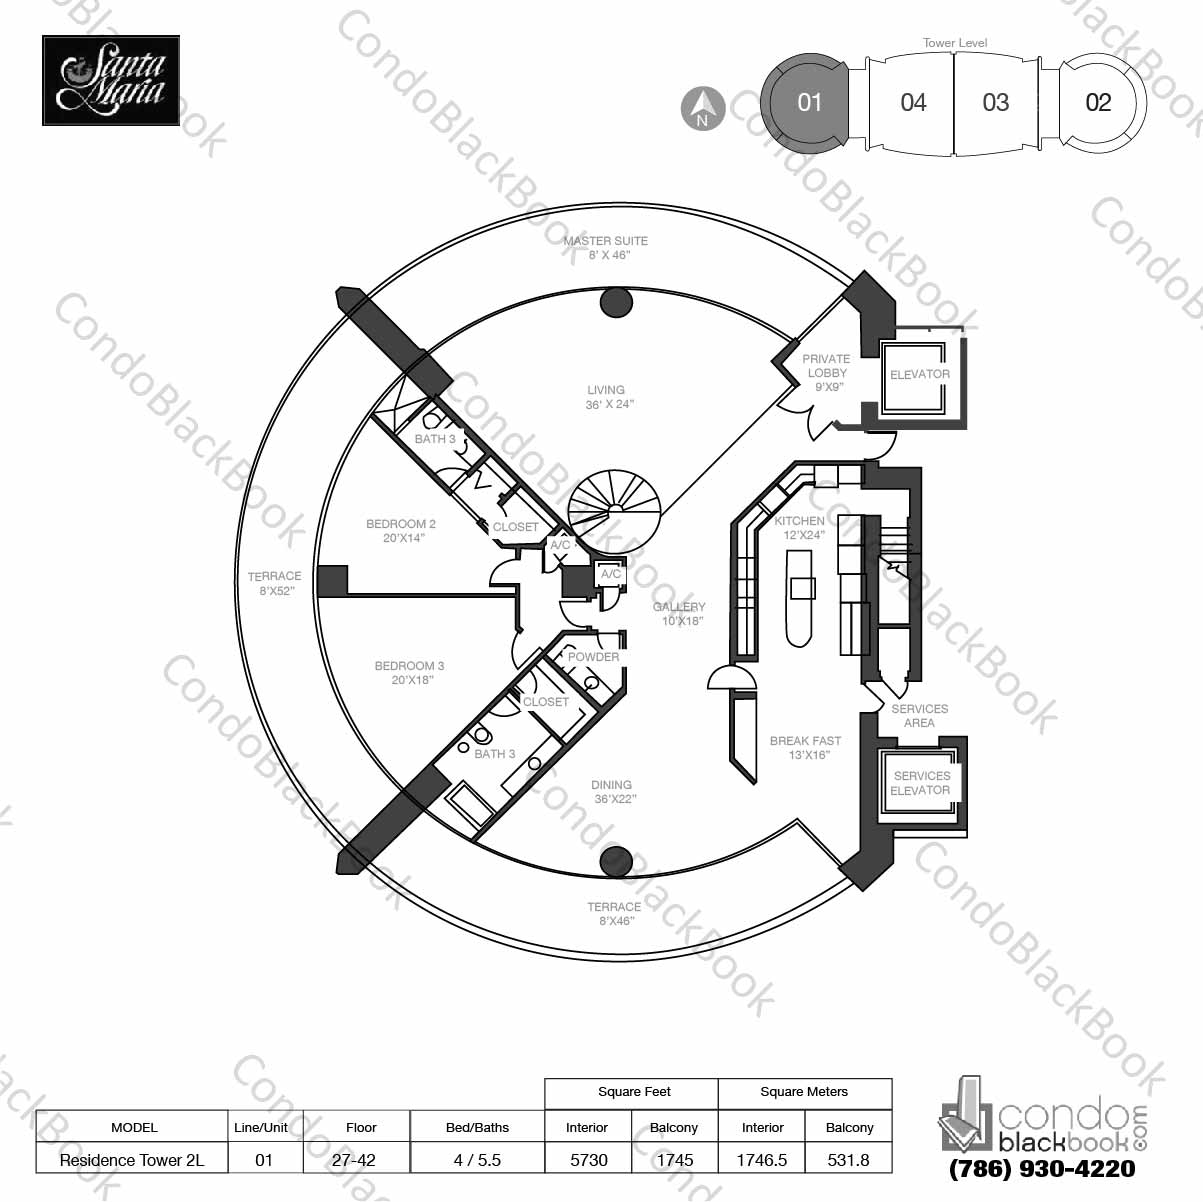 Floor plan for Santa Maria Brickell Miami, model Res. Tower 2L, line 01, 4 / 4.5 bedrooms, 5730 sq ft